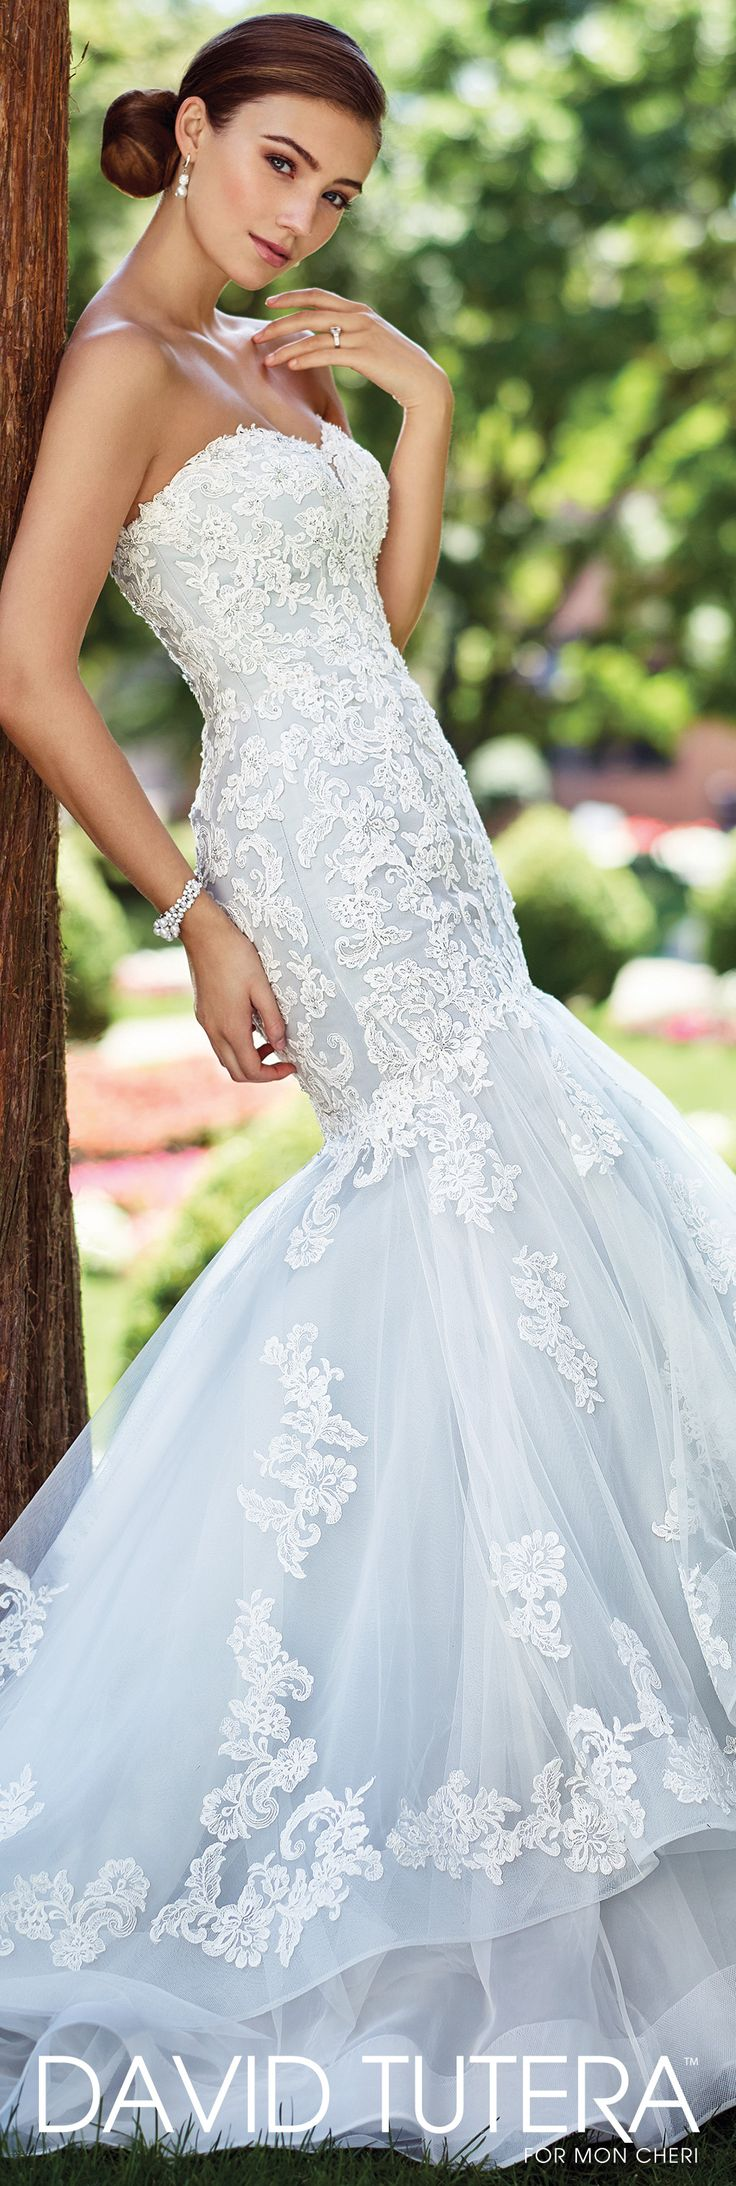 David Tutera for Mon Cheri Spring 2017 Collection - Style No. 117280 Dory - strapless lace mermaid wedding dress in Ivory/Sea Mist